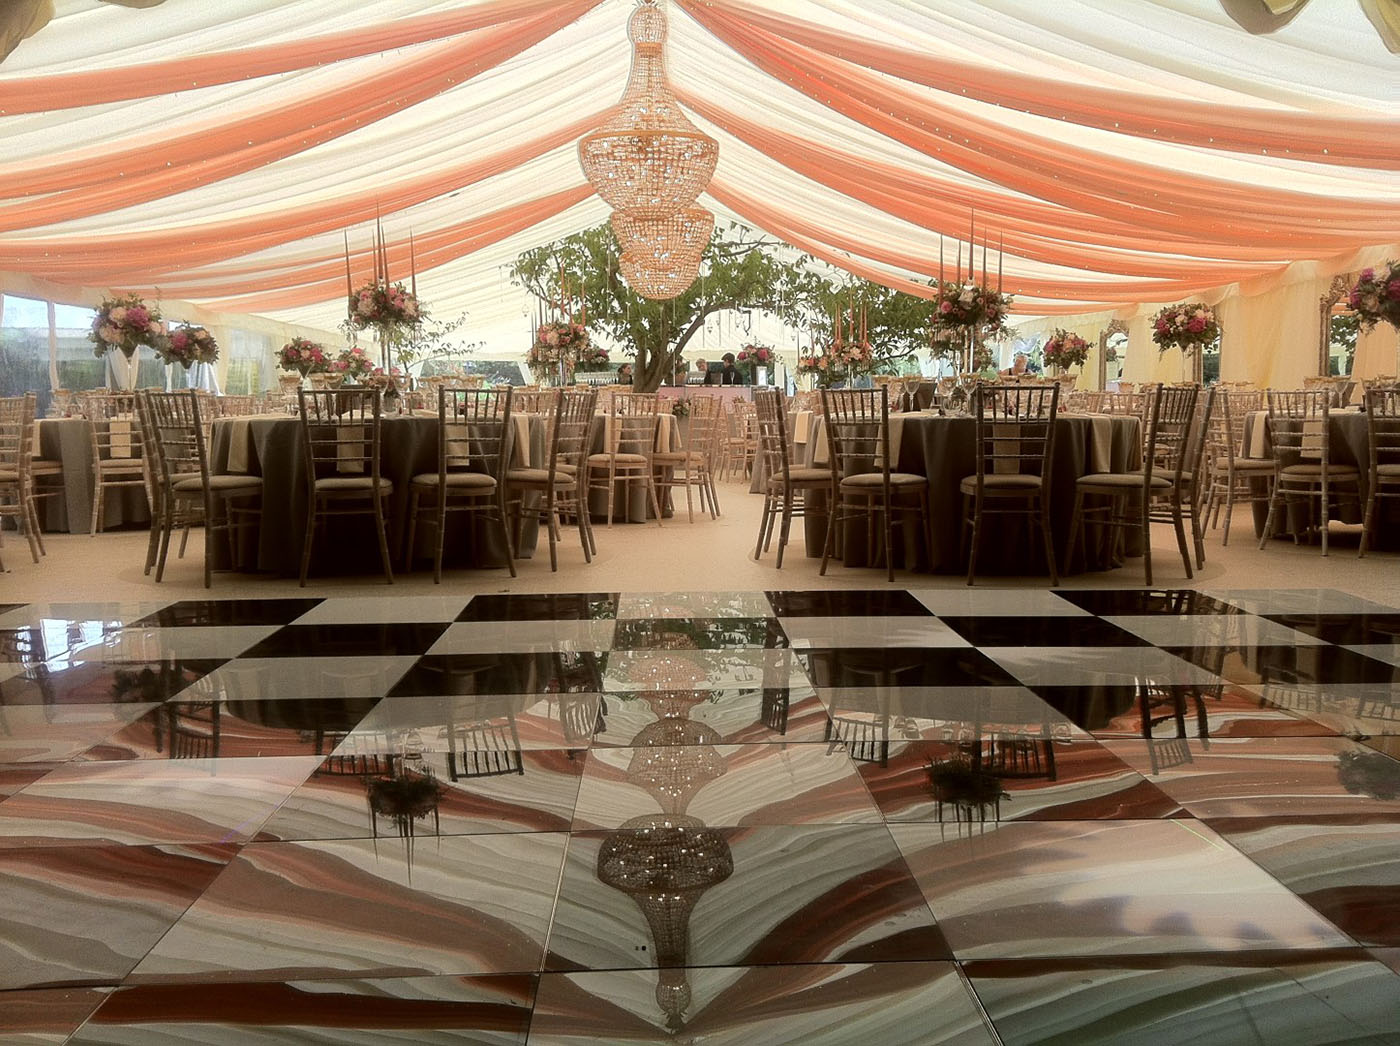 B&W dance floor and draping